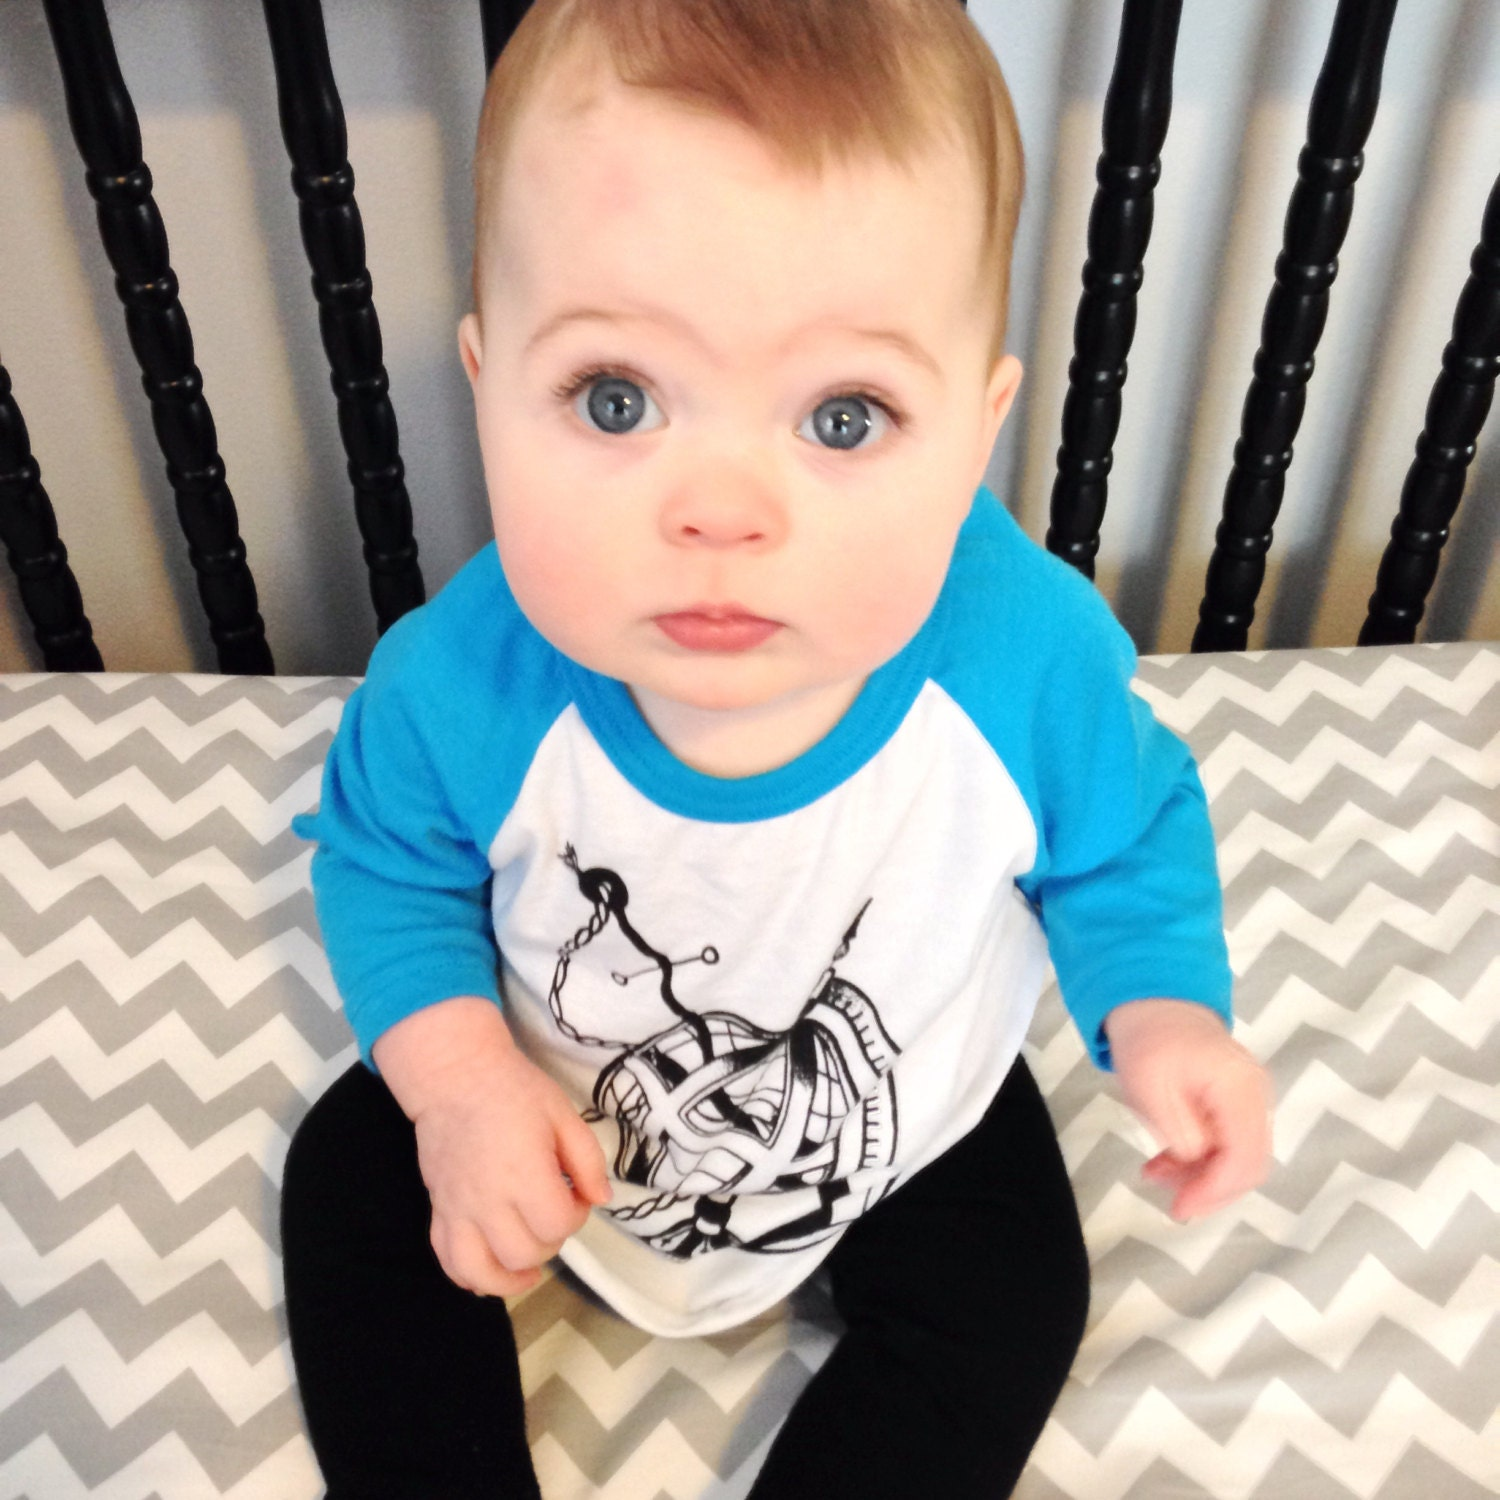 Neon Blue And White Baby Anchor Baseball Tee By